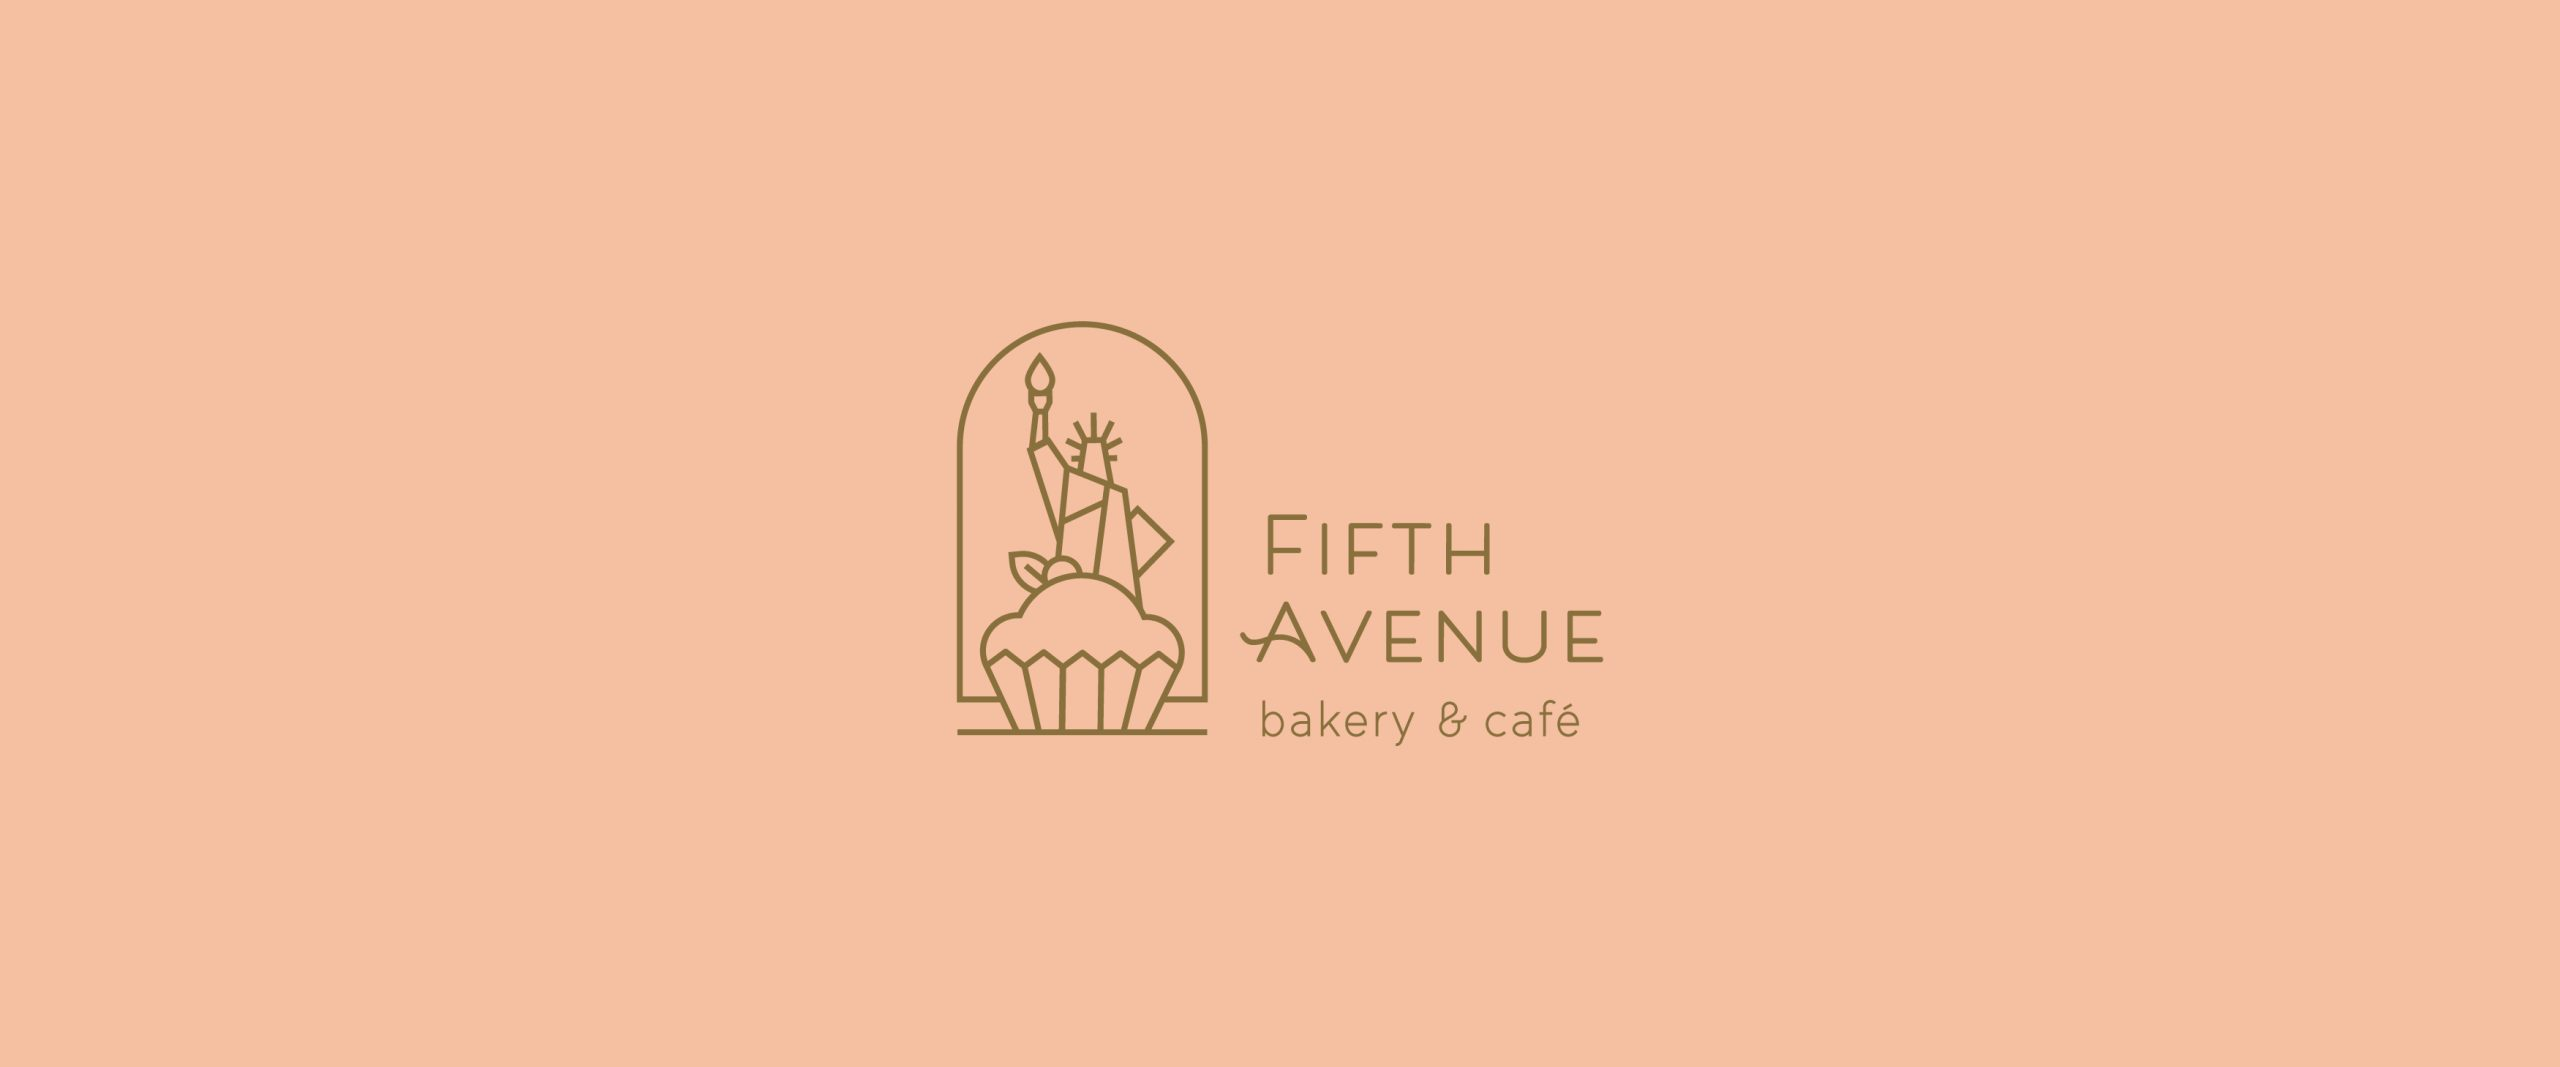 fifthave-flow_logo-banner